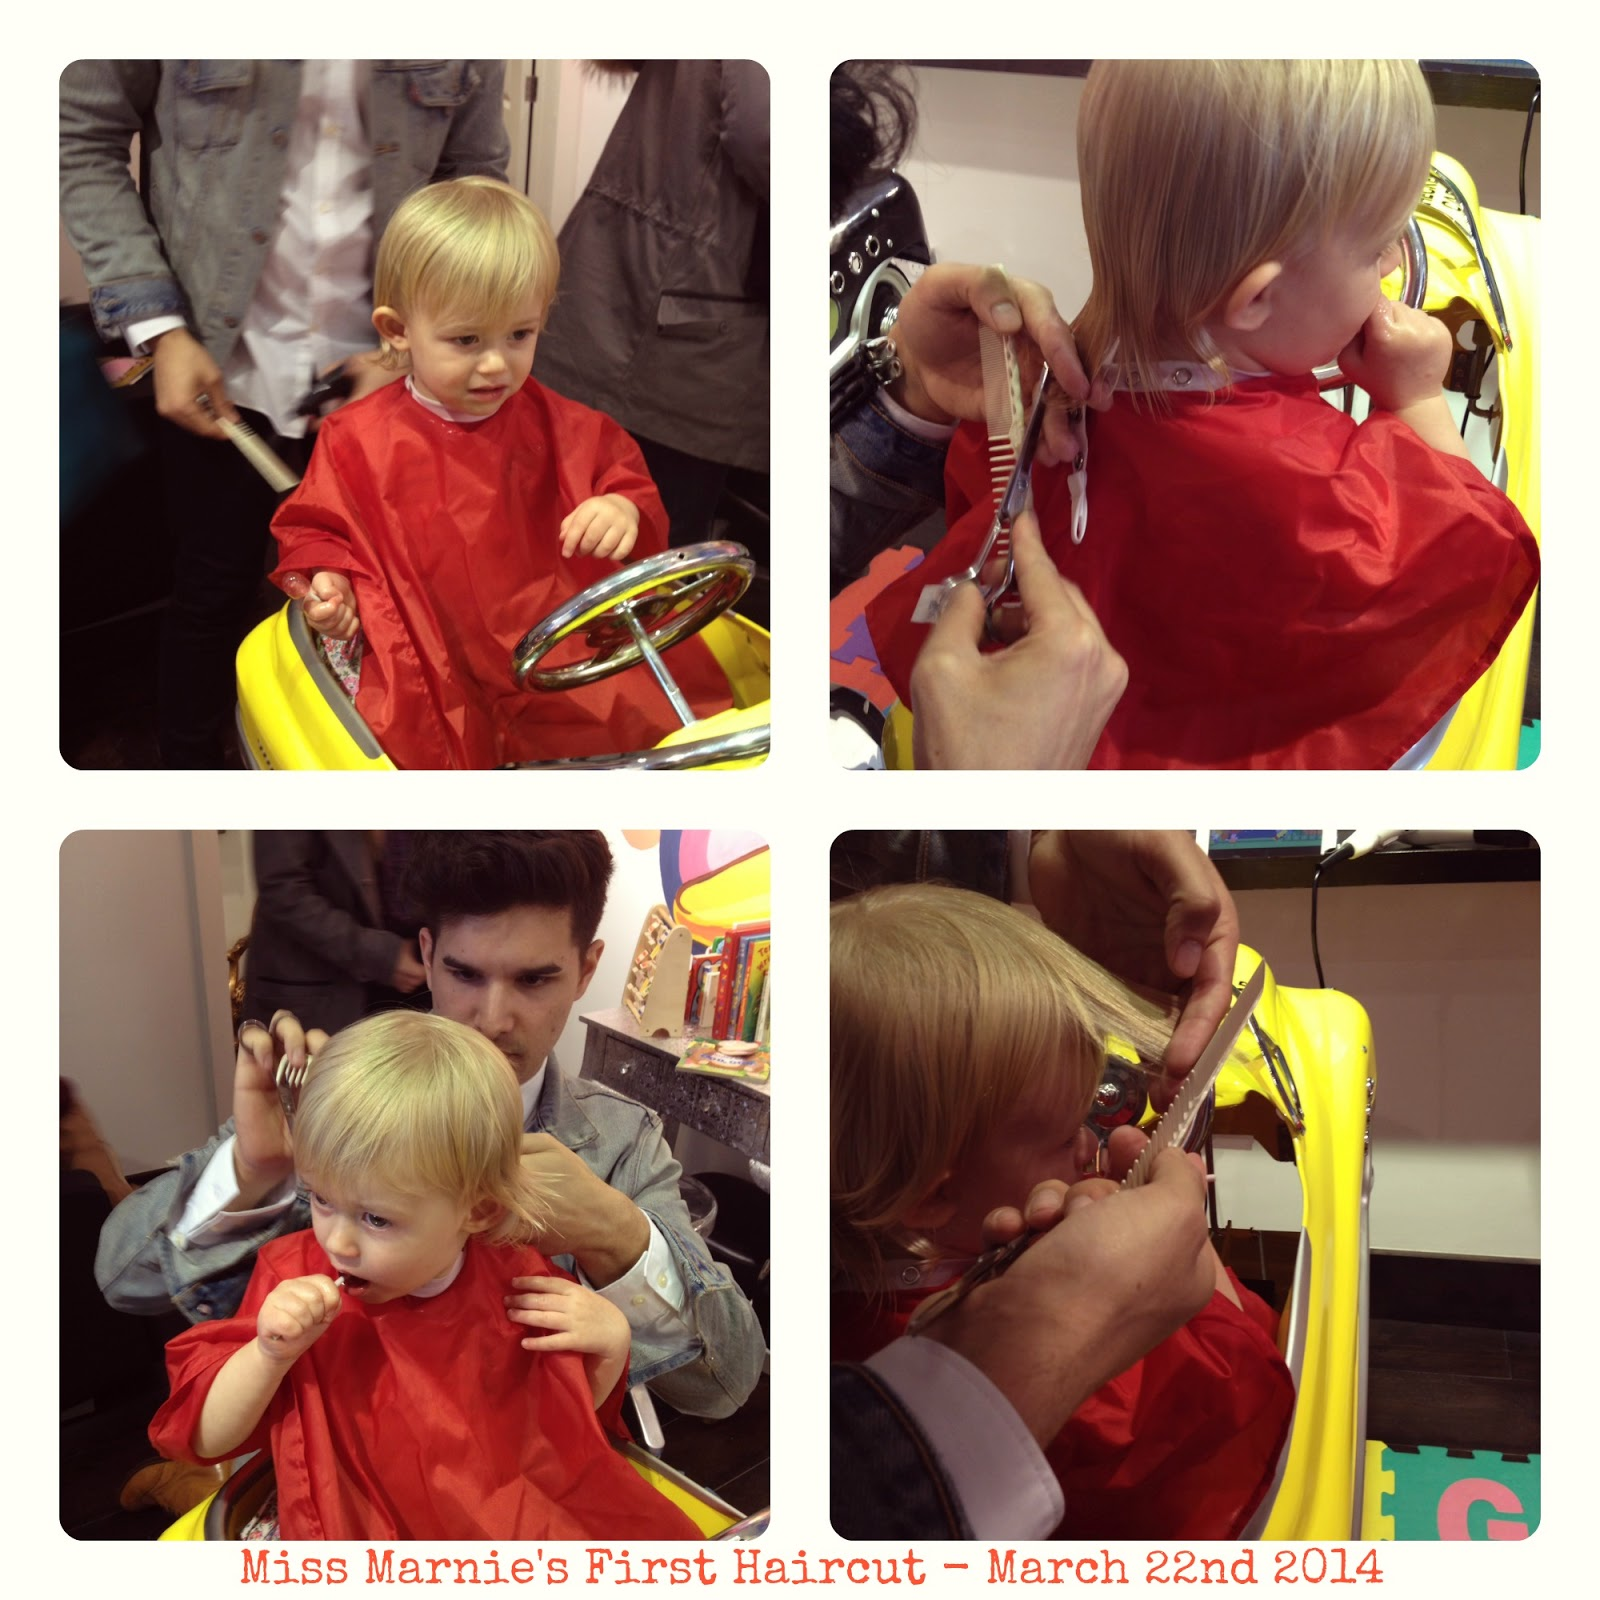 mamasVIB | Miss Marnie's gets her first haircut at new celebrity salon Bella & Beau, Miss Marnie's gets her first haircut at new celebrity salon Bella & Beau | kids hair salon | liberty X | Jessica Pietersen | kevin pietersen | cricket legend | exclusive kids hairdressers | notting hill | ledbury road | bella and beau | first hair cut | mamasVIB | blog | interview | celebrity hair soon | new opening | shop | beauty |fashion | hair dressing | celebrity hair | blog | mummy blog